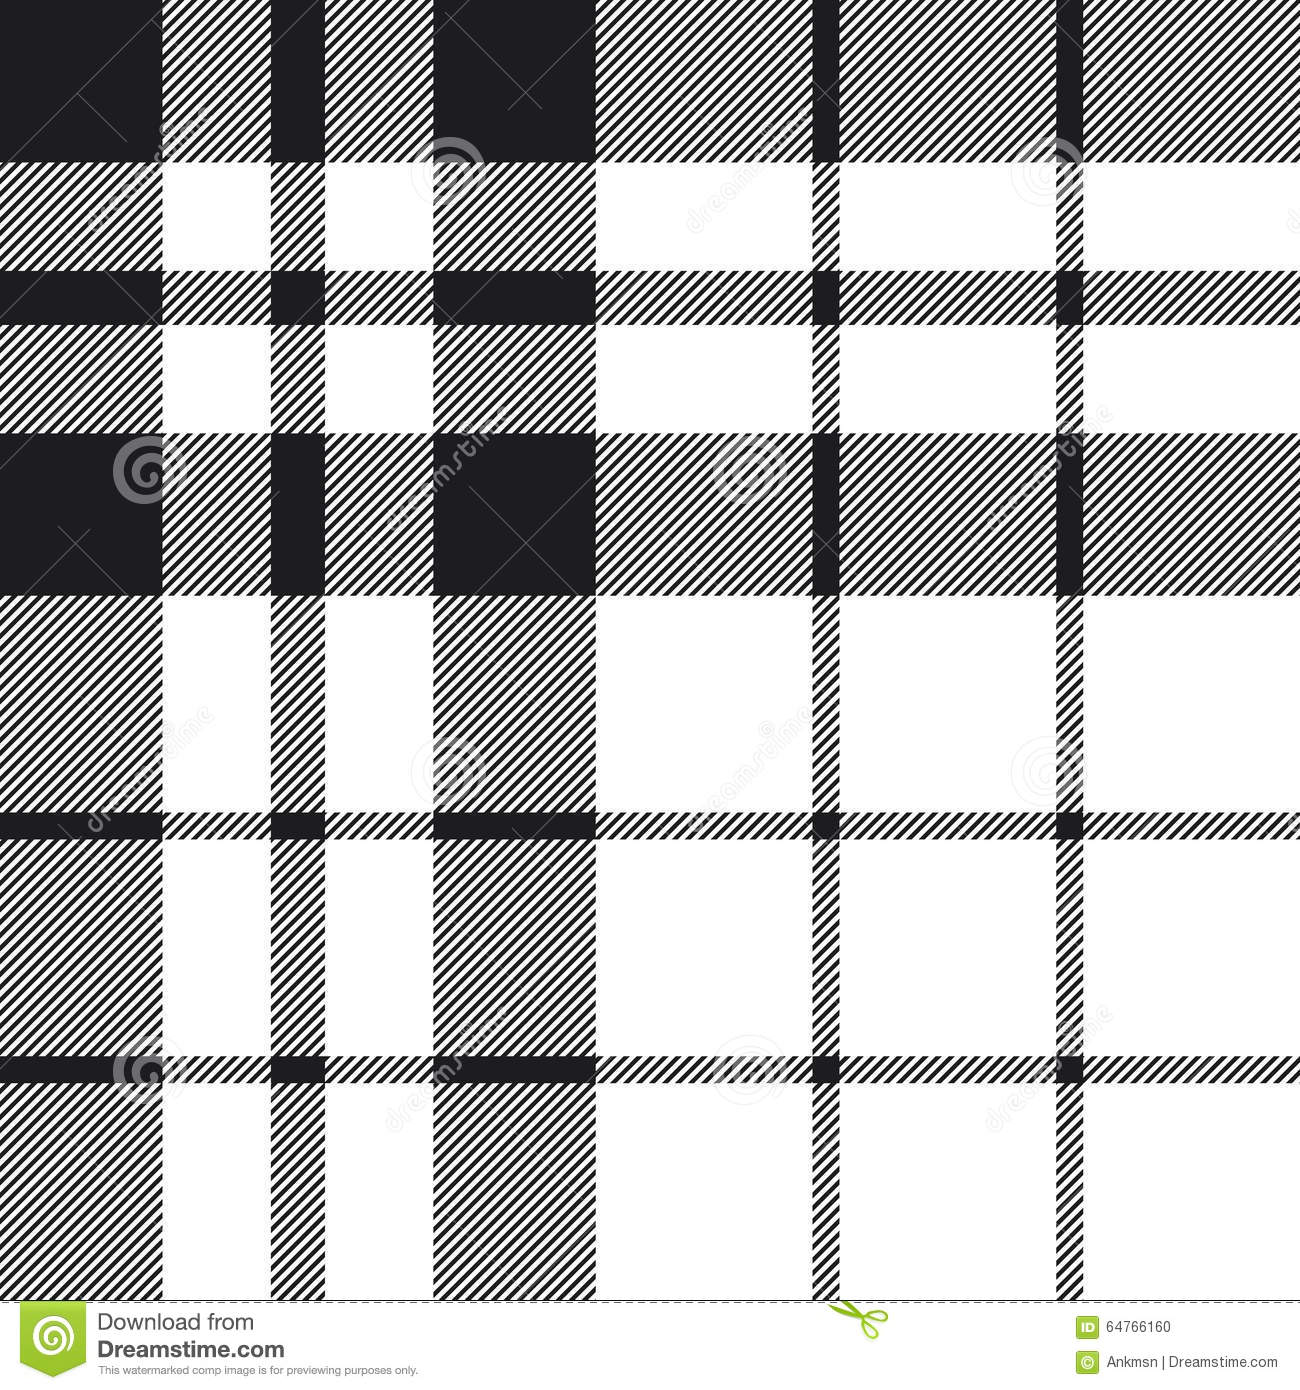 Seamless black and white checkered texture stock images image - Hibernian Fc Tartan Check Plaid Black And White Pattern Seamless Stock Photo